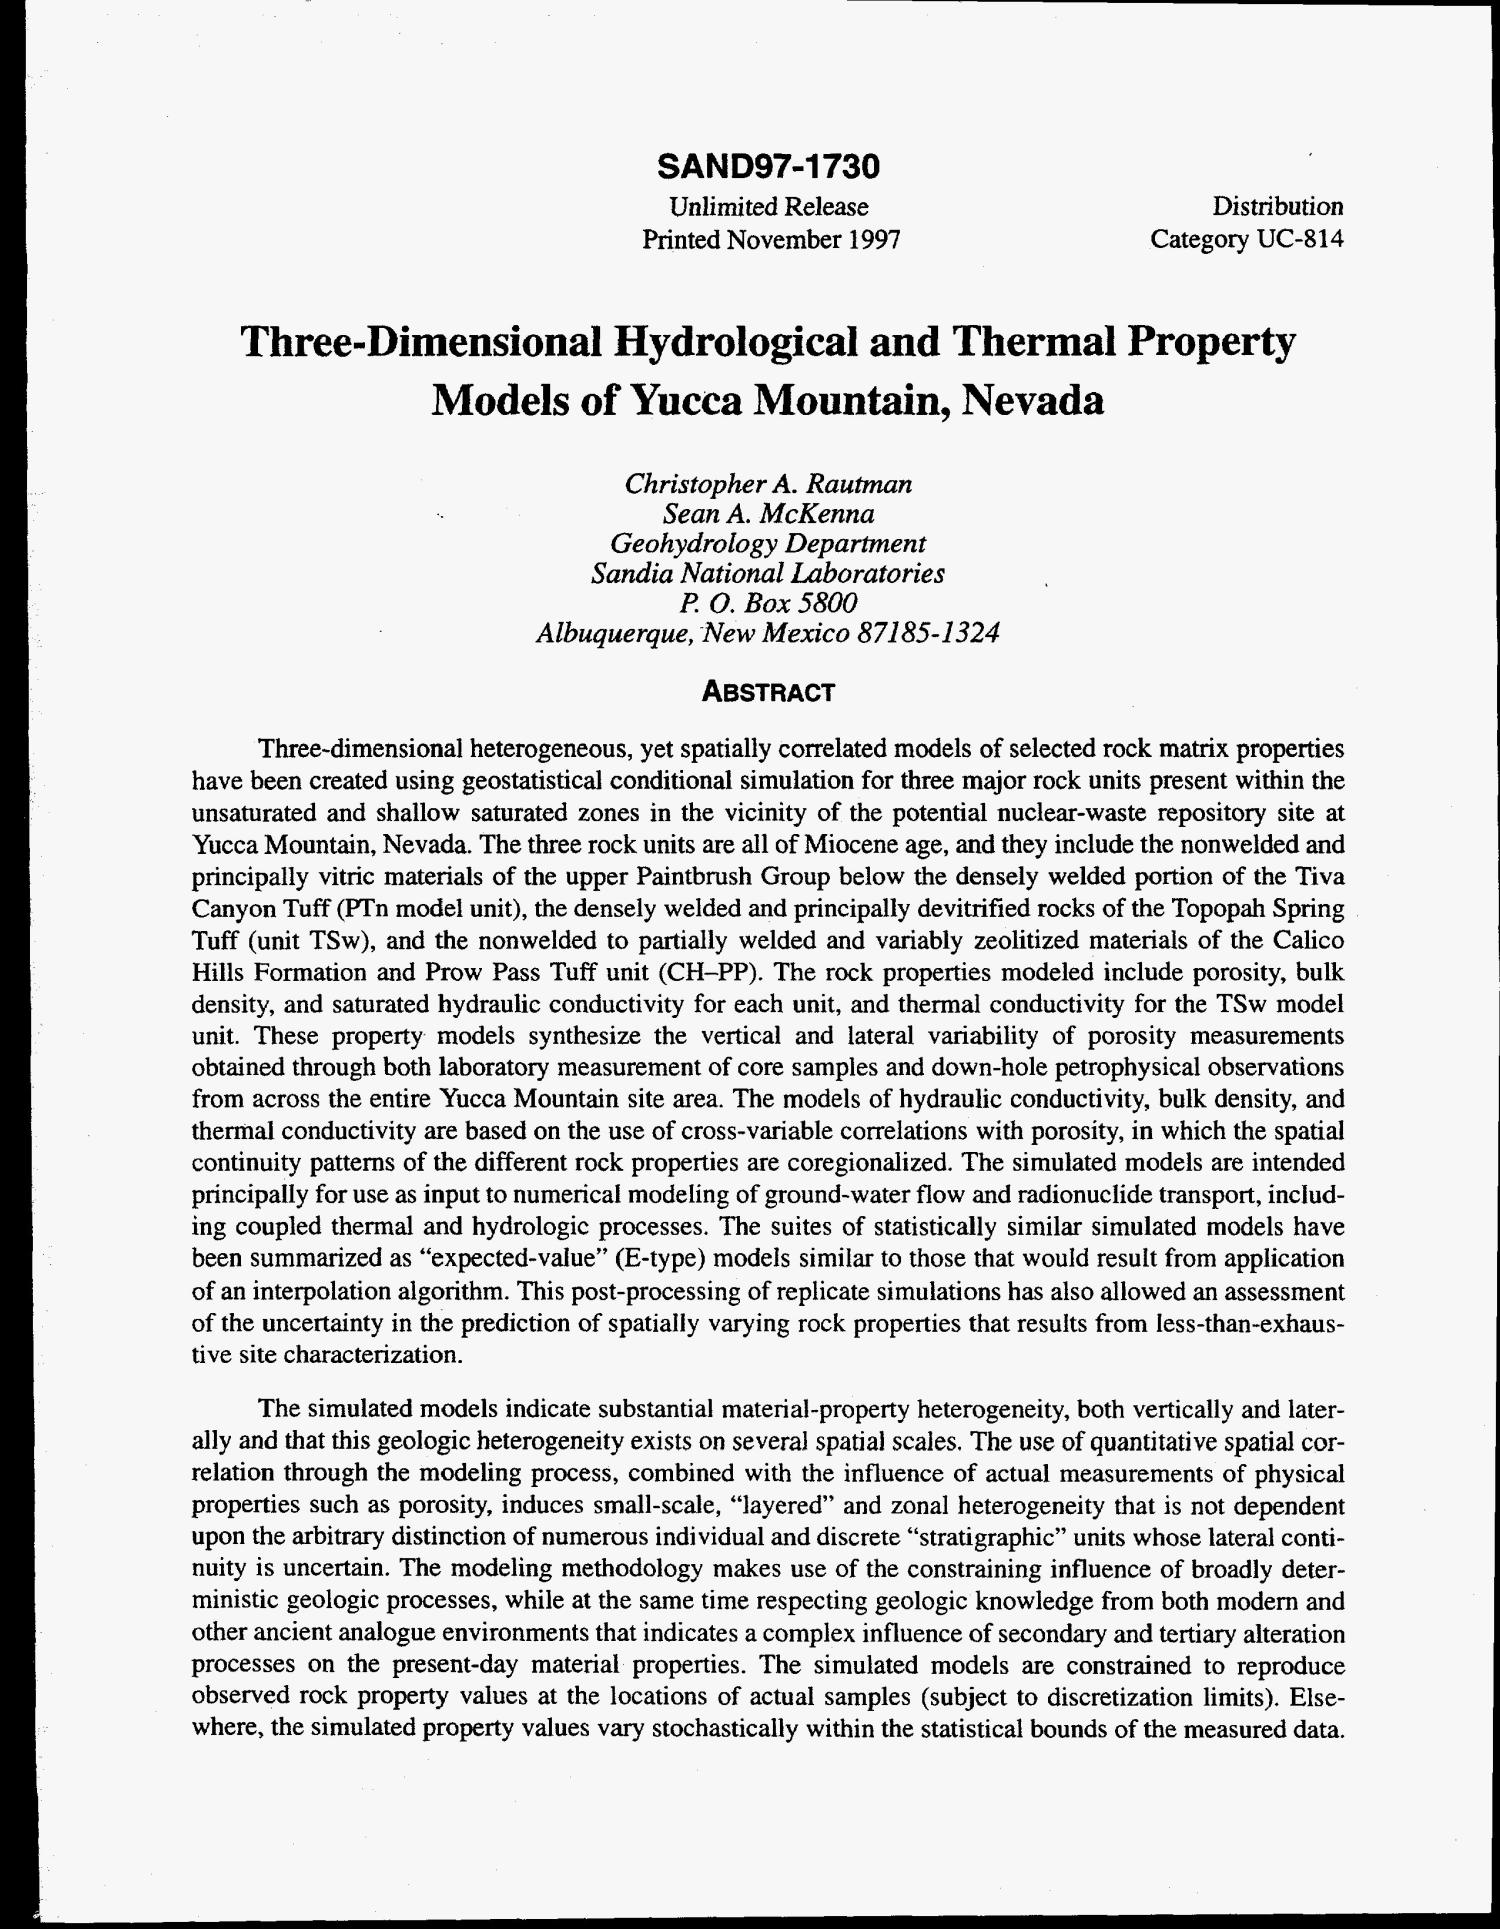 Three-dimensional hydrological and thermal property models of Yucca Mountain, Nevada                                                                                                      [Sequence #]: 4 of 351